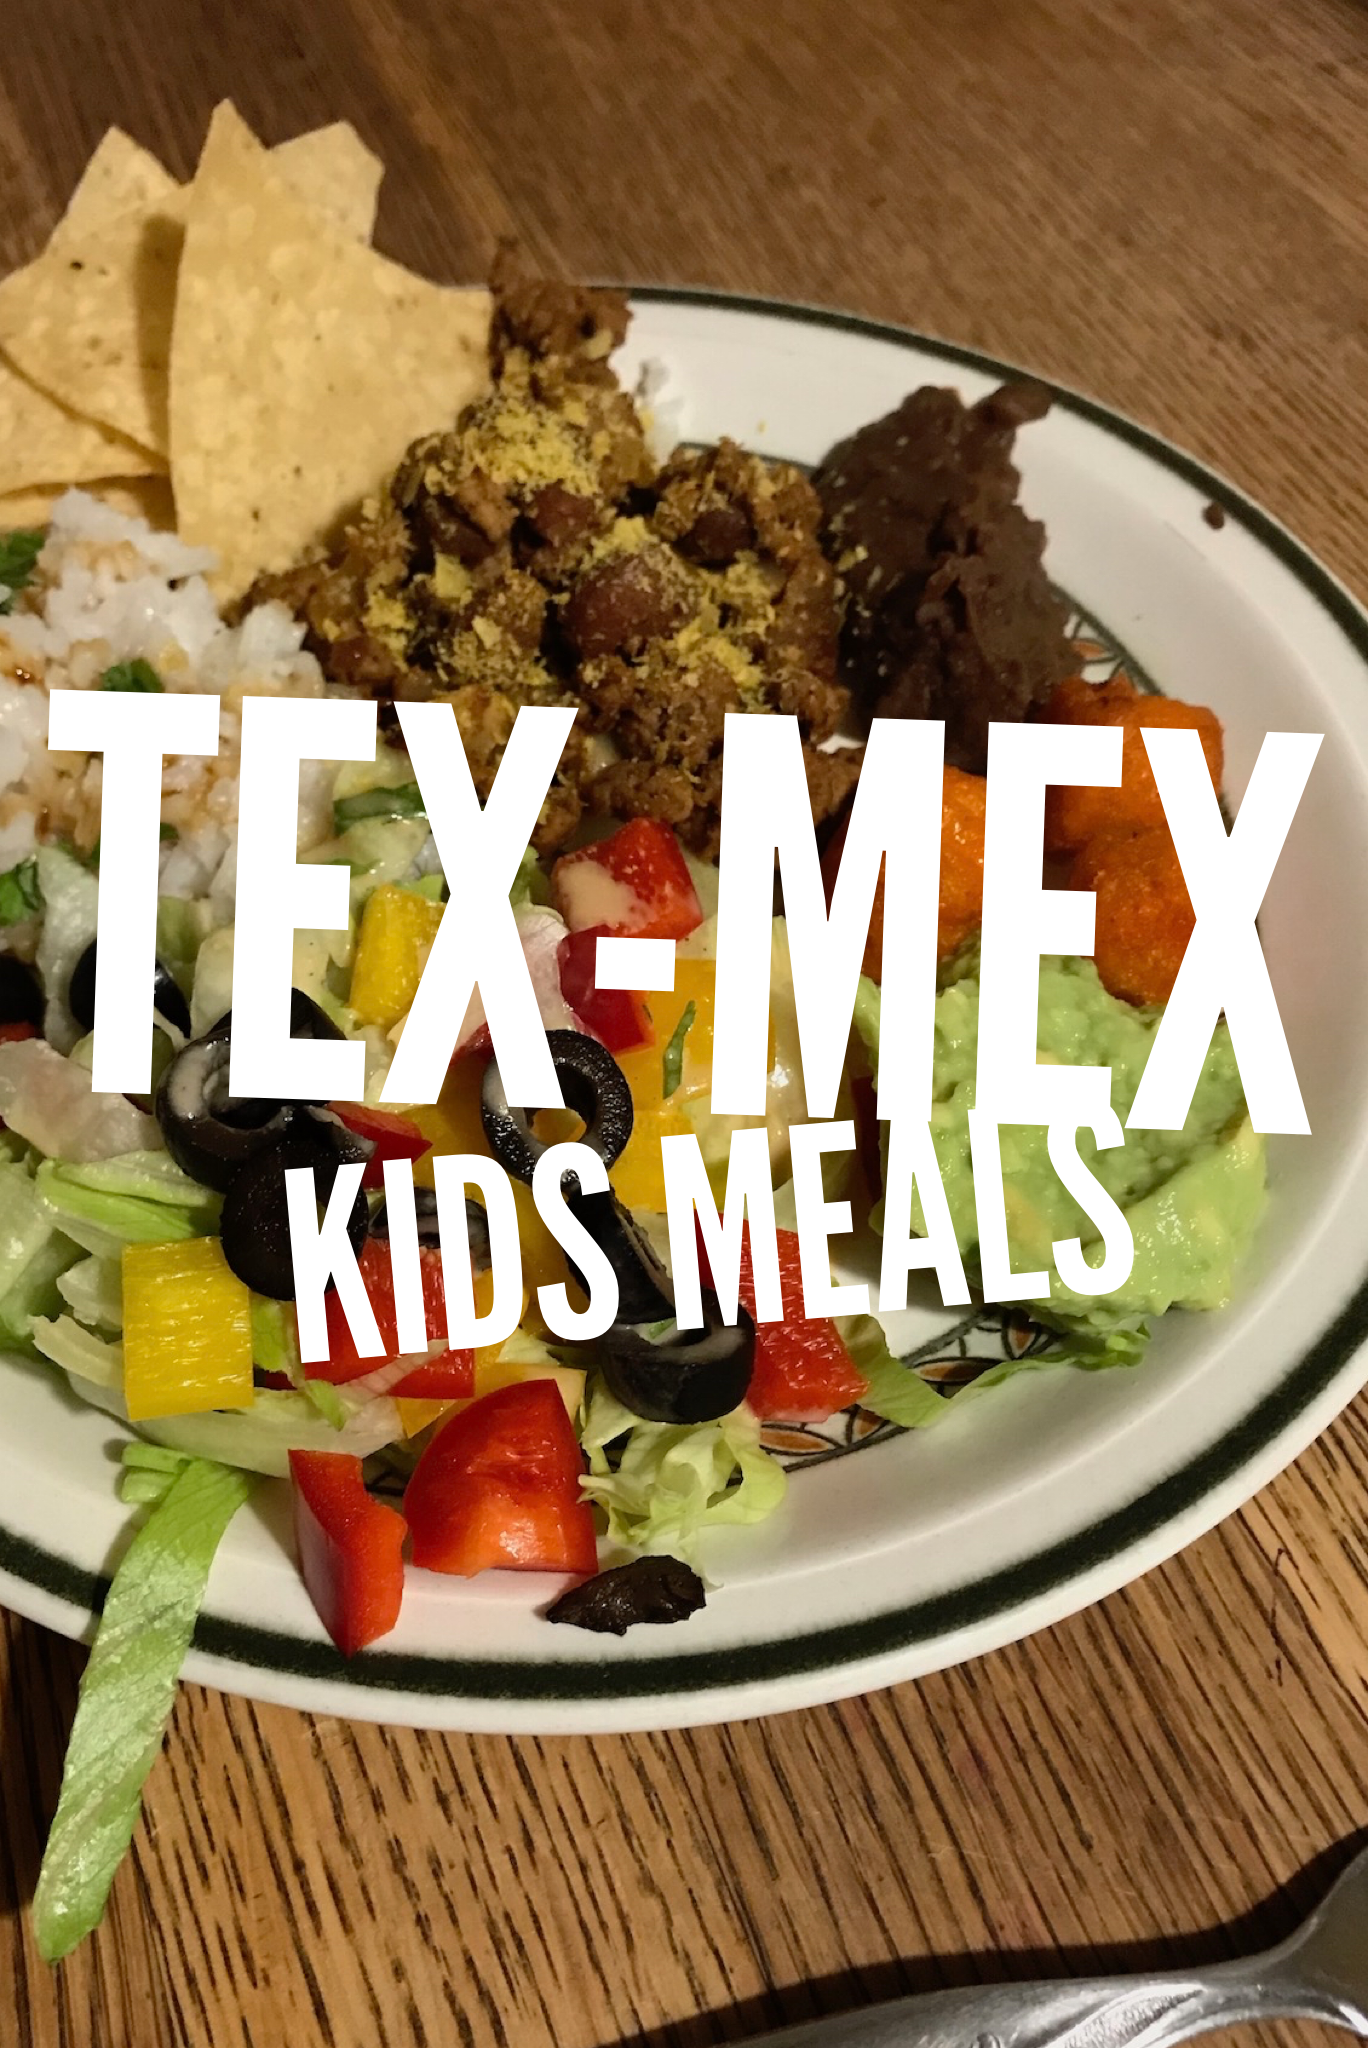 TexMex Kids Meals Here are some awesome ideas for texmex kids meals Whether youre having taco tuesday or need a quick snack idea here are some healthy ways to share mexic...